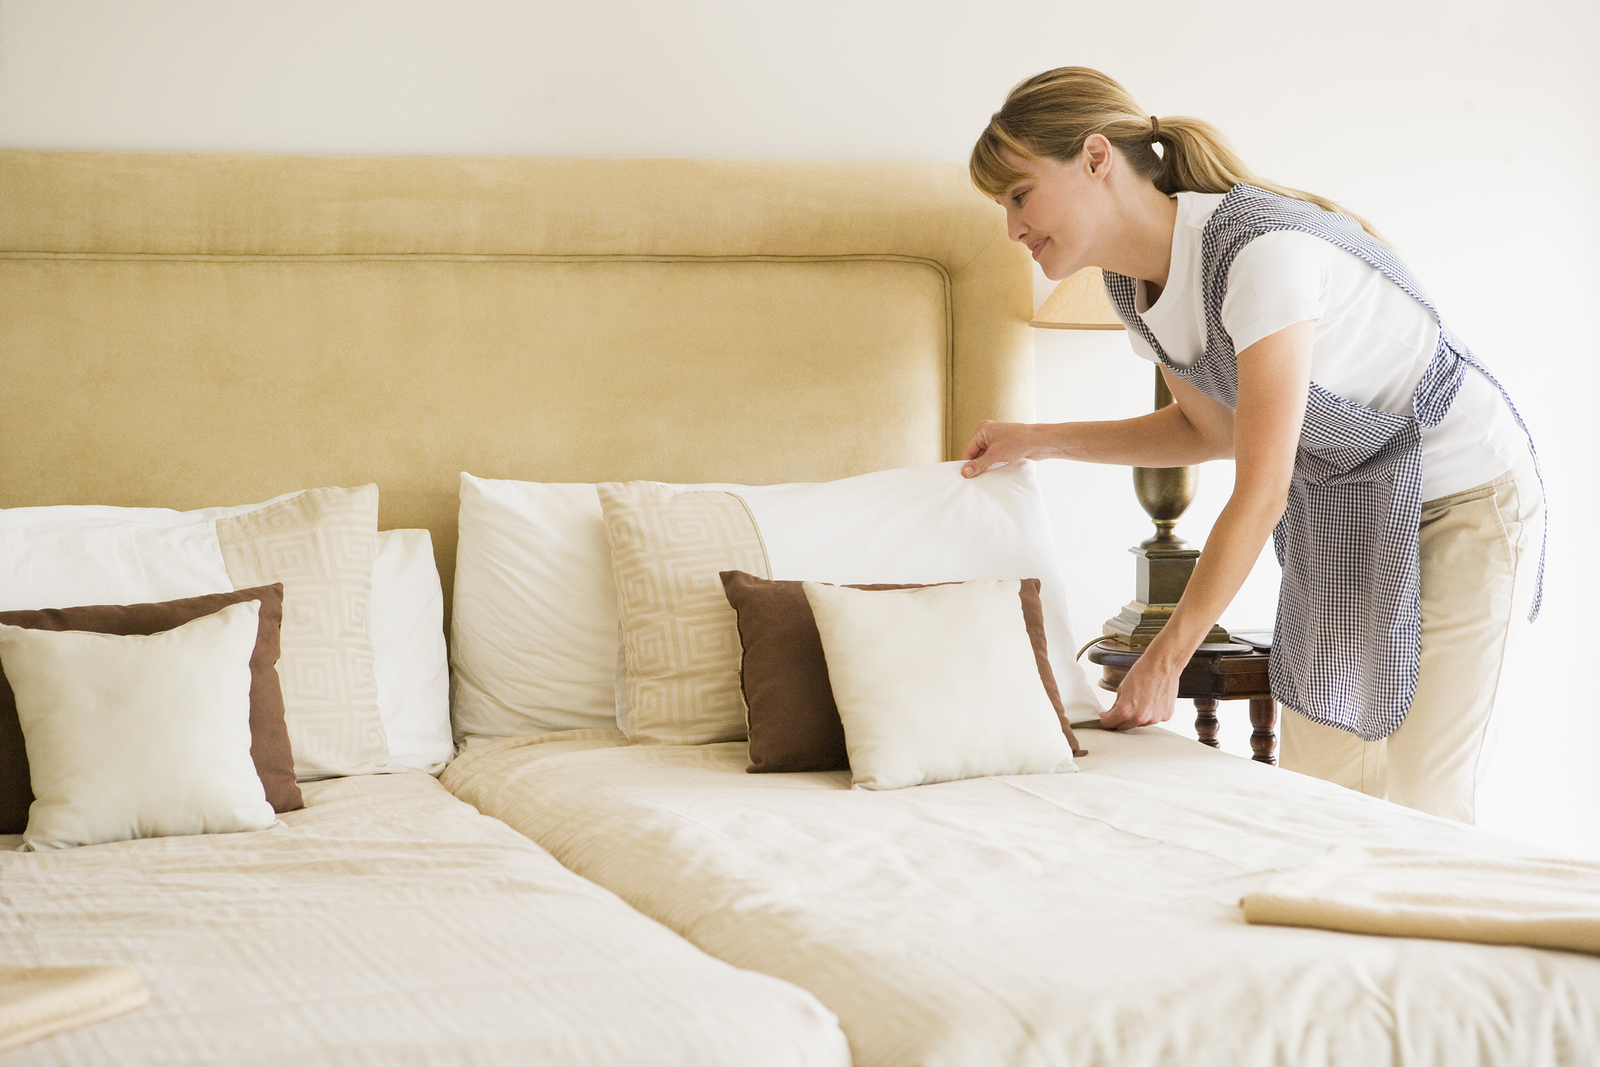 House Cleaning Rates Sarasota FL   Go HouseMaids Cleaning Service